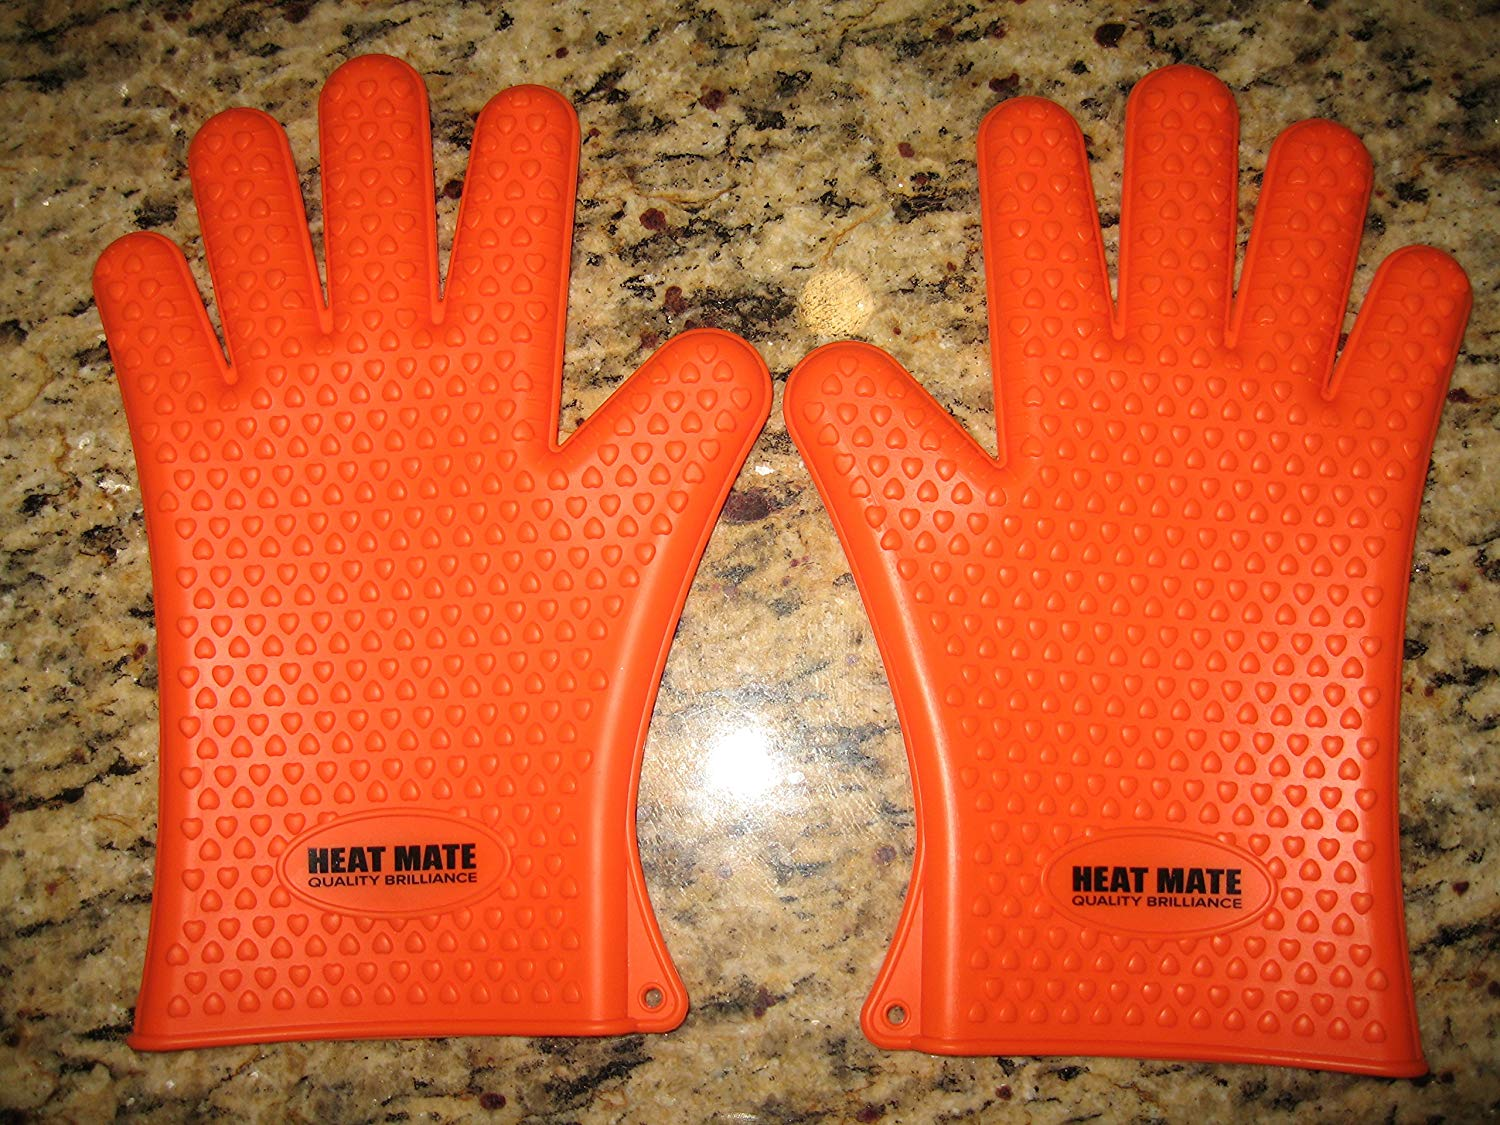 Bbq Gloves Heat Resistant - Silicone Oven, Baking, Smoking, Microwave, Cooking, Hand Gloves - Heat Resistant Kitchen Mittens - Super Incredible High Heat Proof Protection - Cool Safety Heavy Duty Grip Set - Eco Pot Holders - Best Heat Resistant Gloves - Waterproof - Outdoor Grill Hand/skin